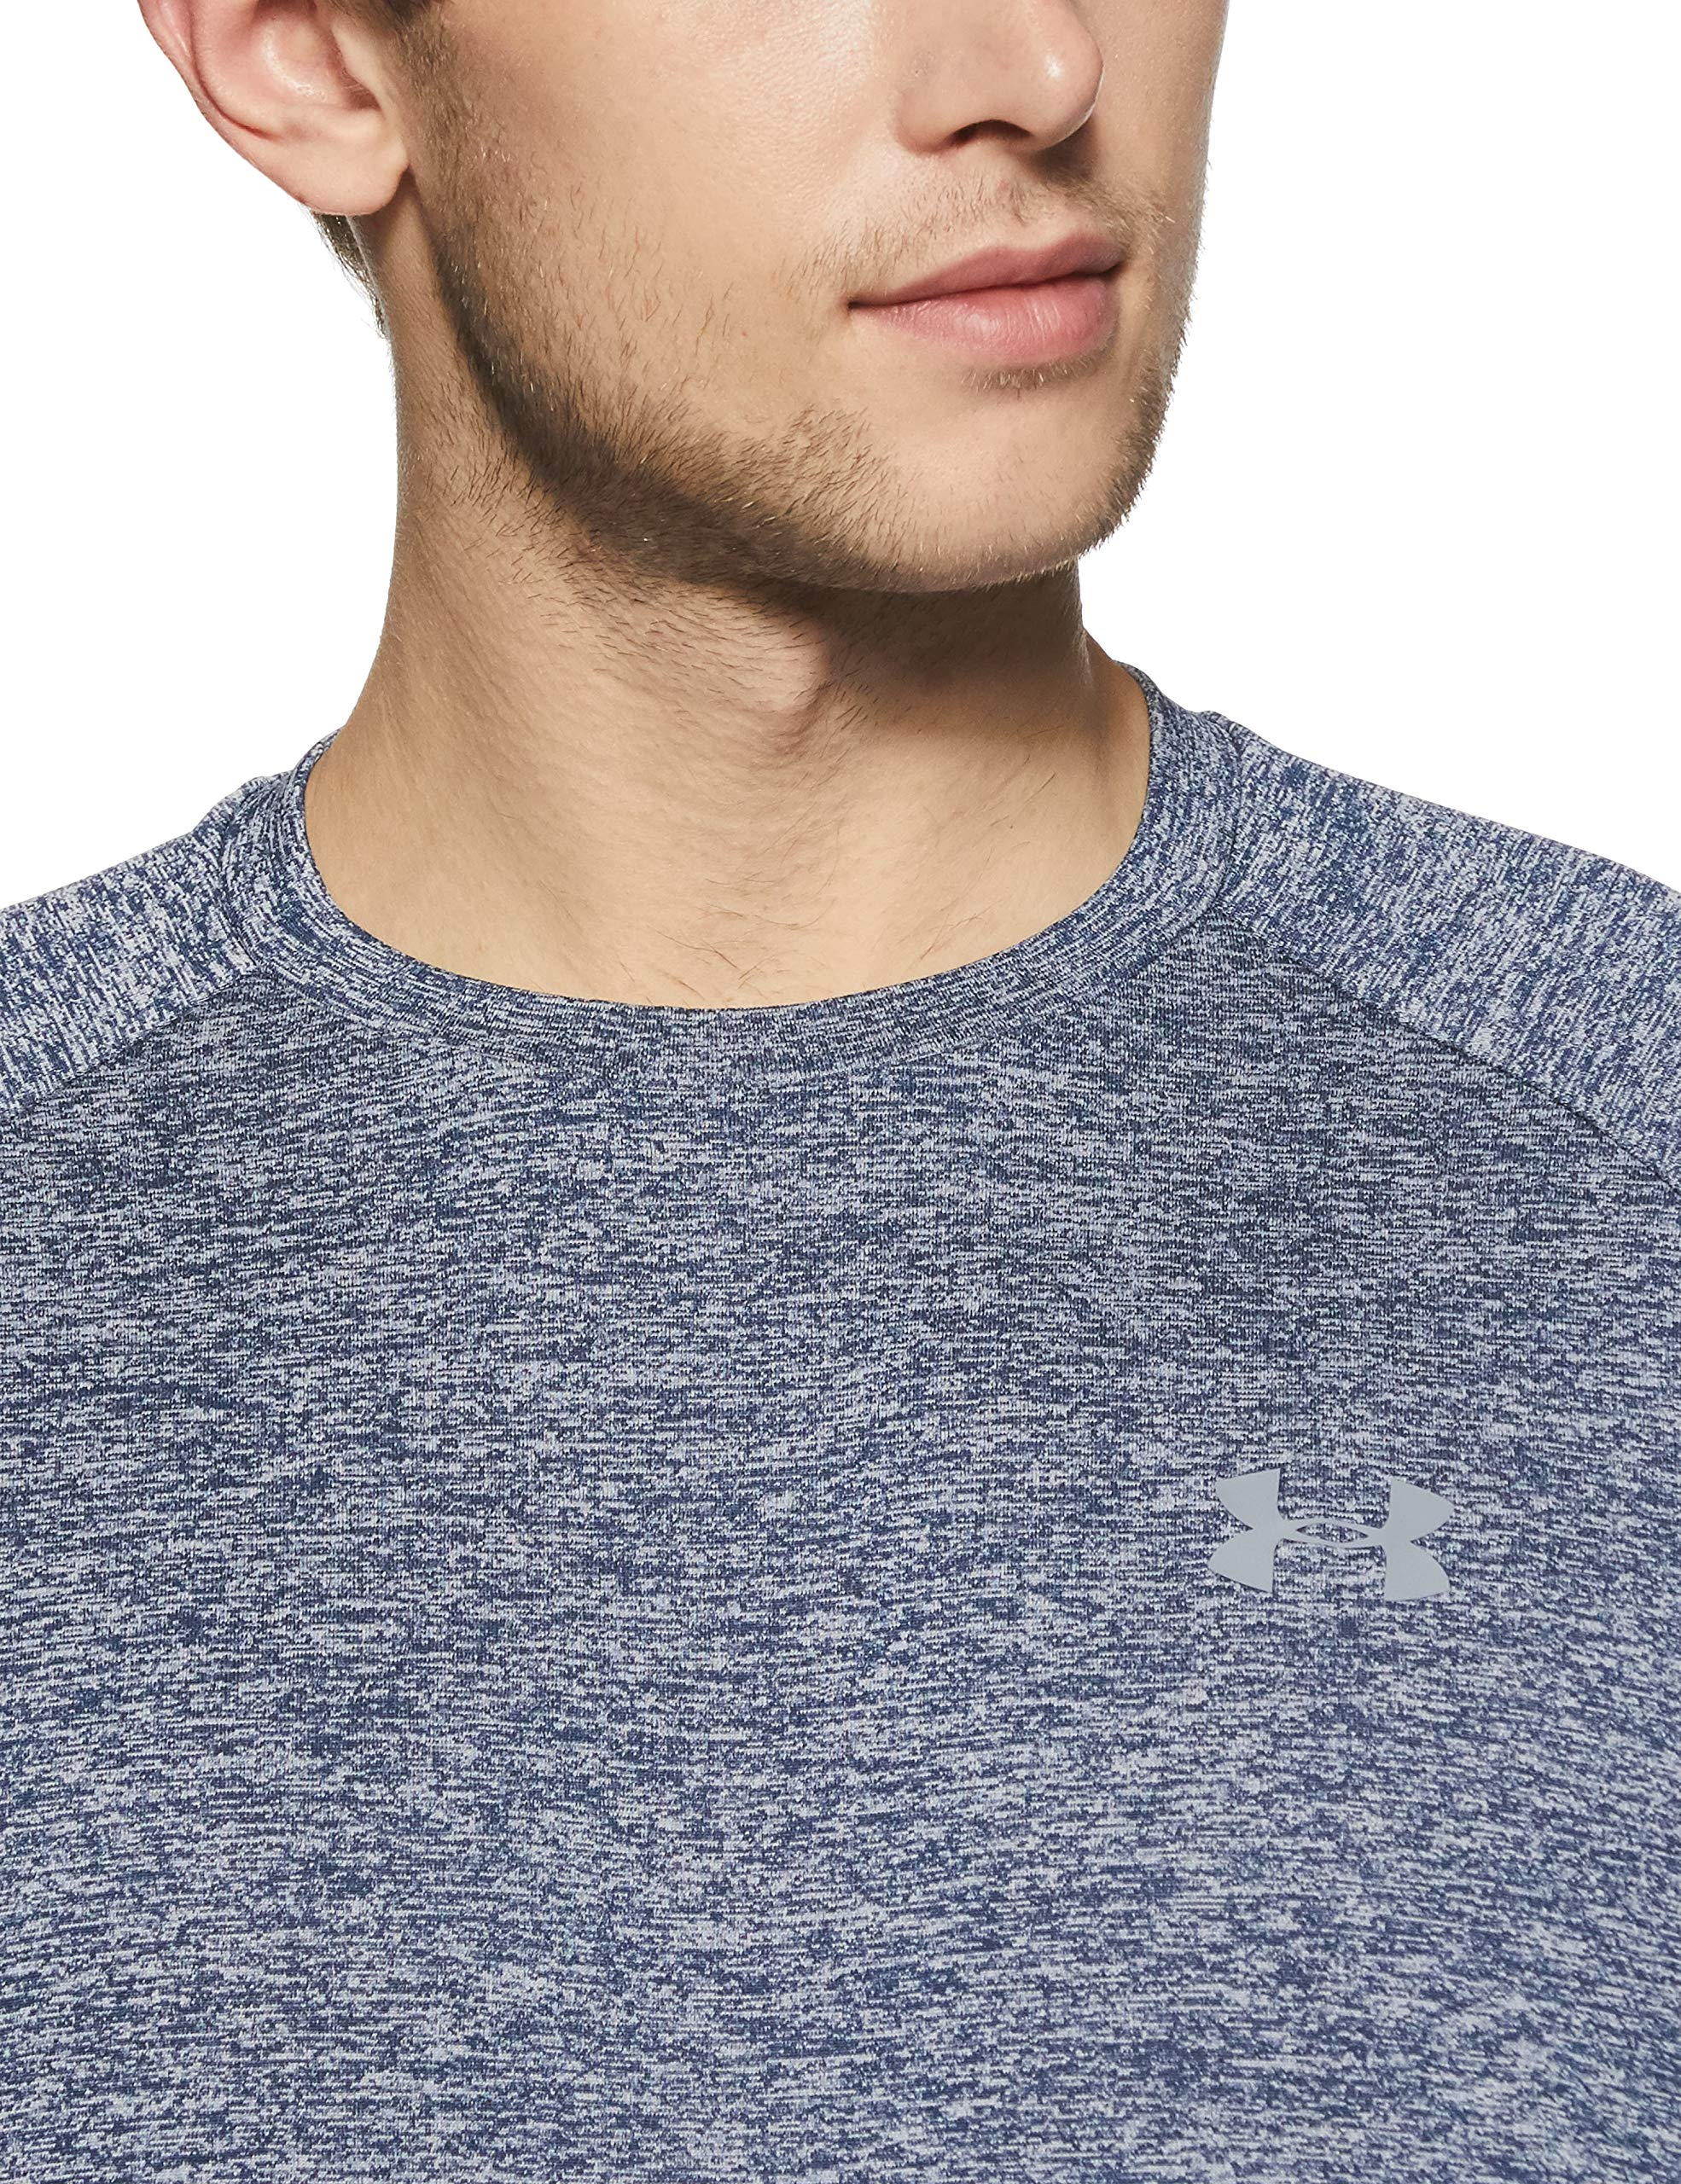 Under Armour Men's Tech 2.0 Short Sleeve T-Shirt, Academy (409)/Steel, 3X-Large by Under Armour (Image #4)